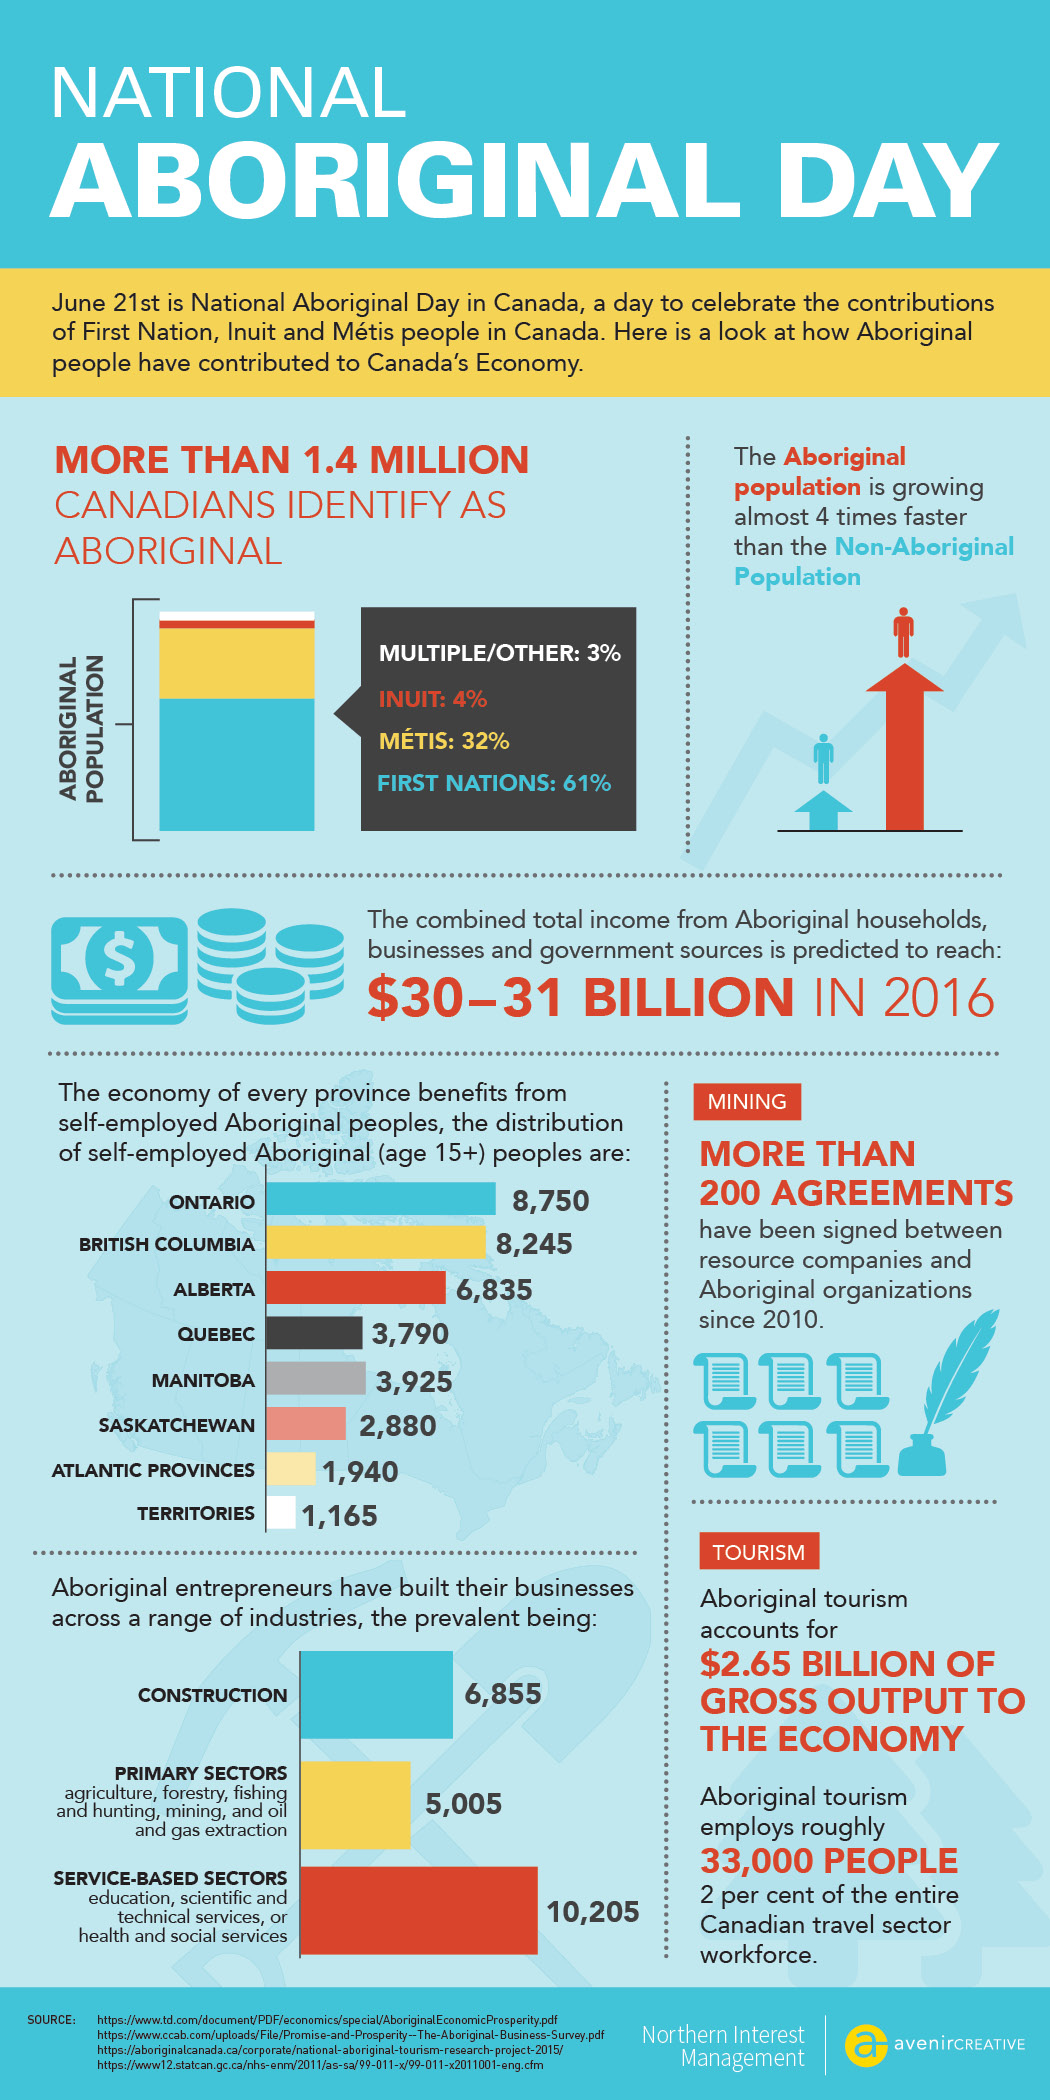 avenircreative-Aboriginal-Day-Infographic.jpg